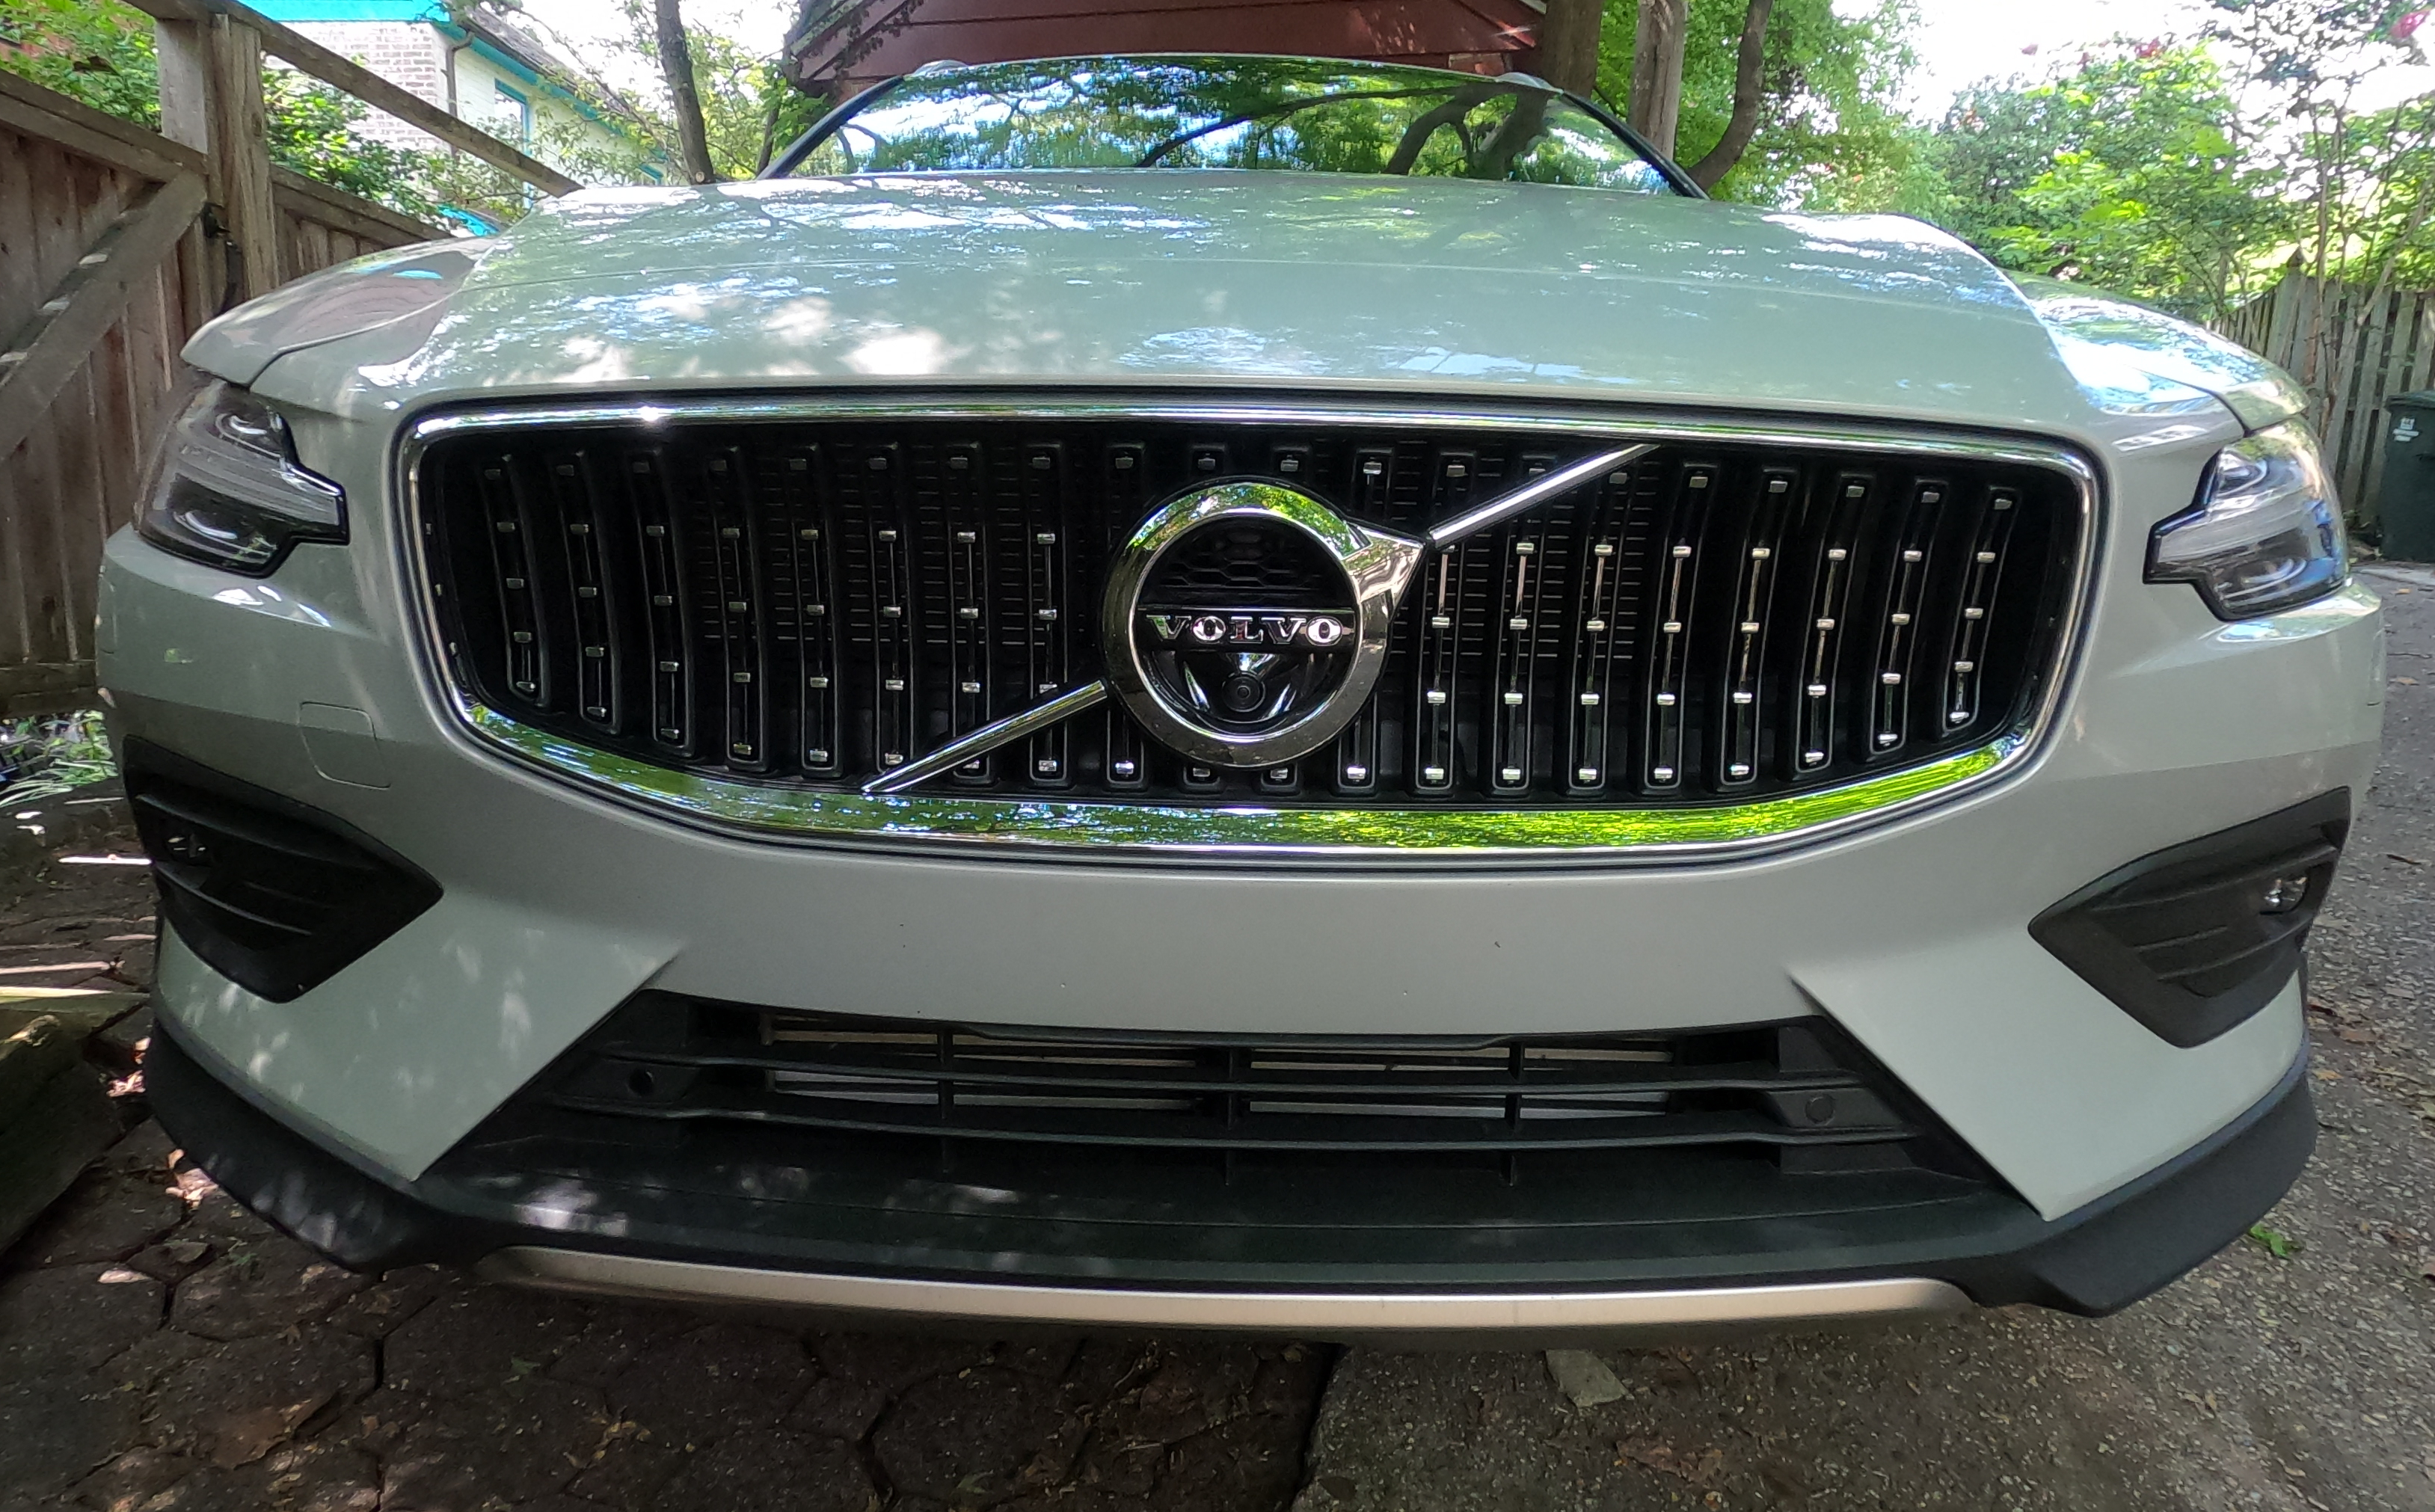 Grill and Thor's Hammer headlamps on the Volvo V60